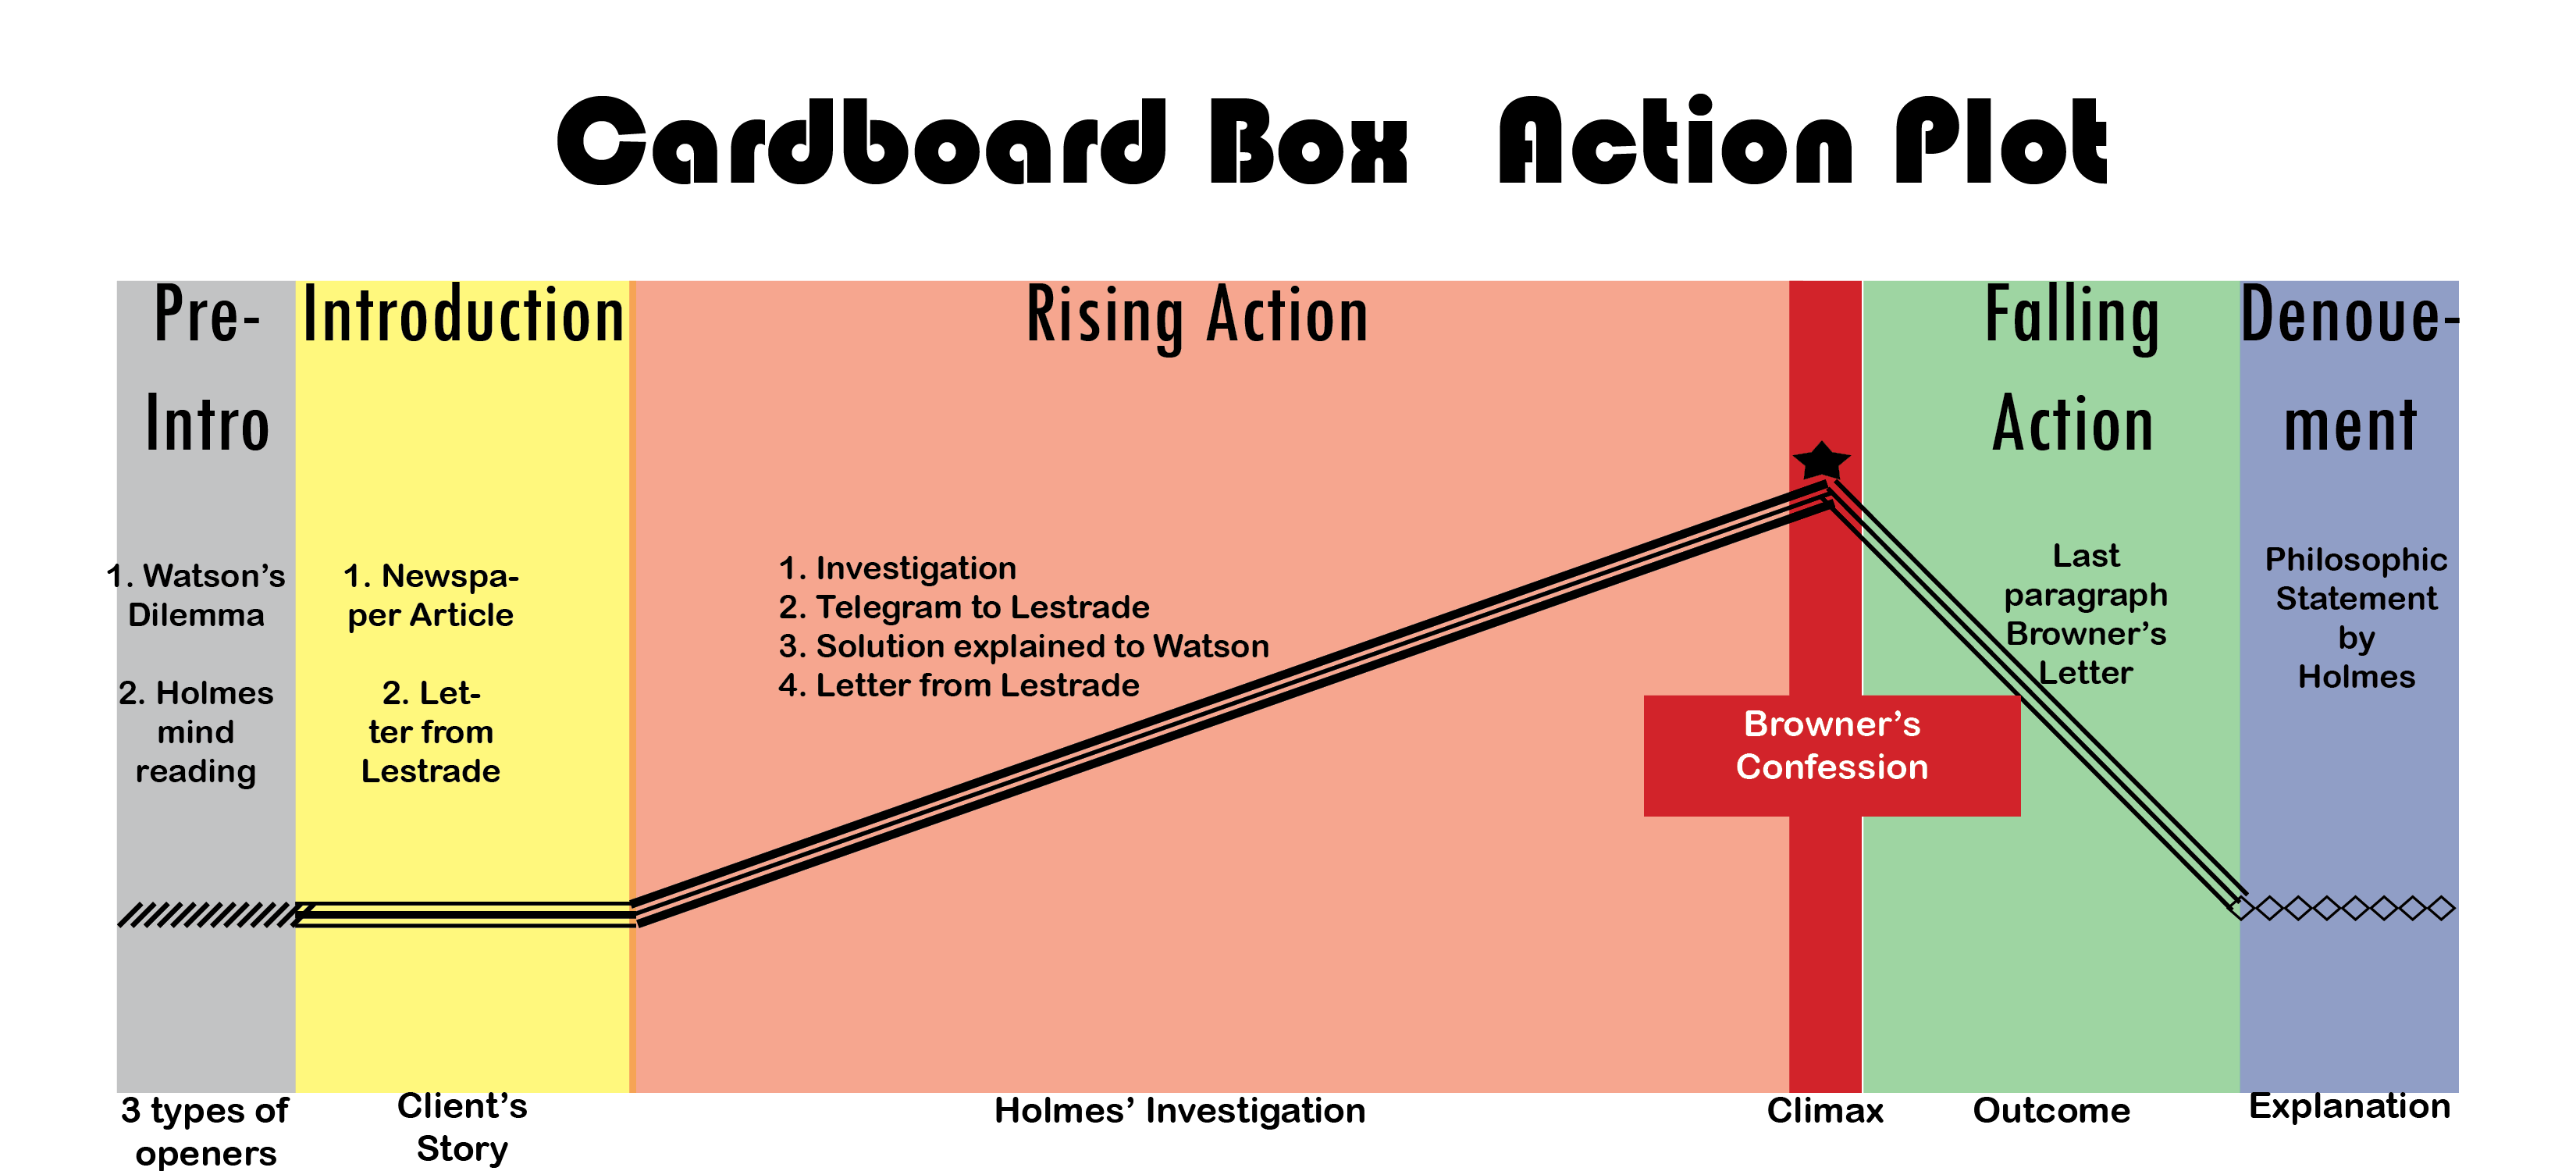 Adventure of the Cardboard Box Action Plot